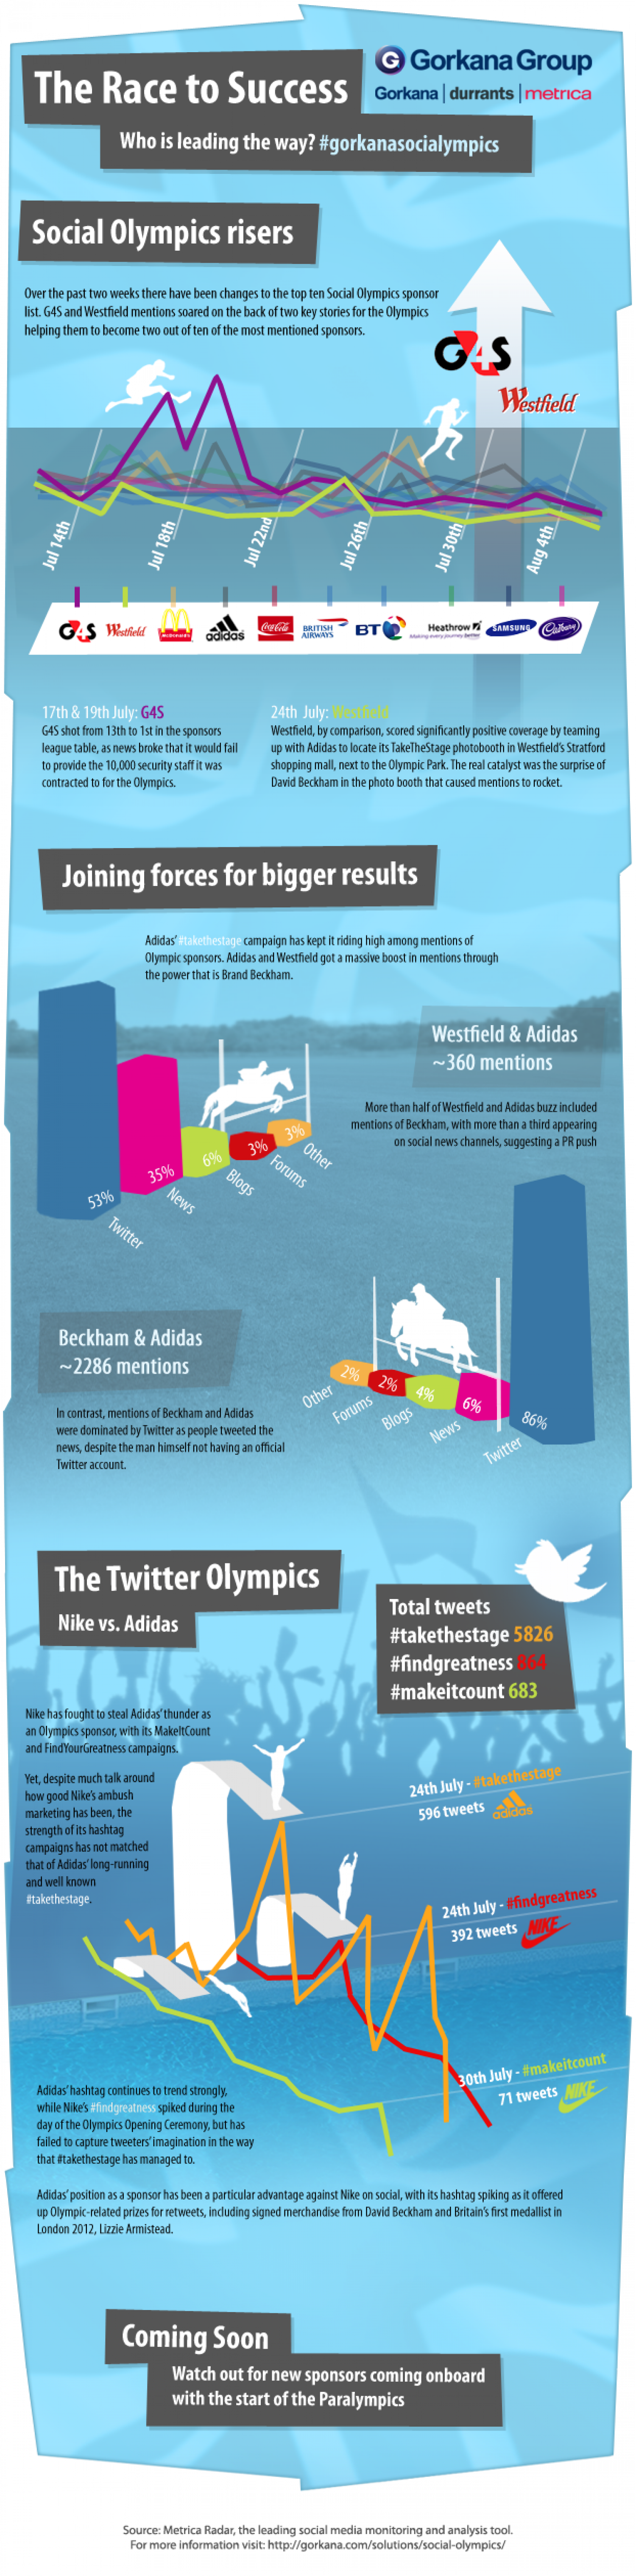 Social Olympics risers Infographic